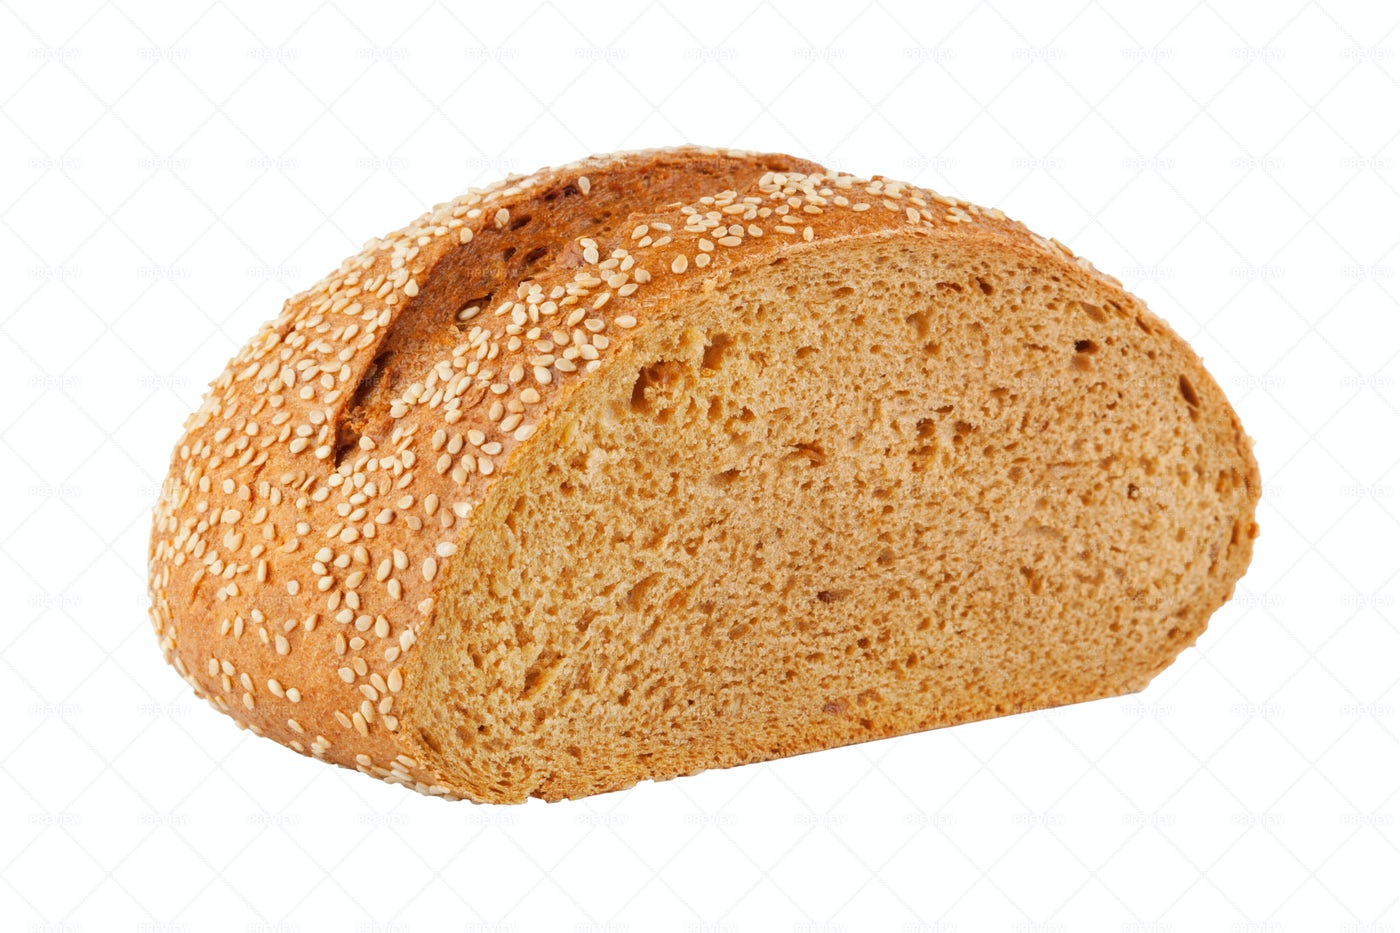 Bread With Sesame Seeds: Stock Photos